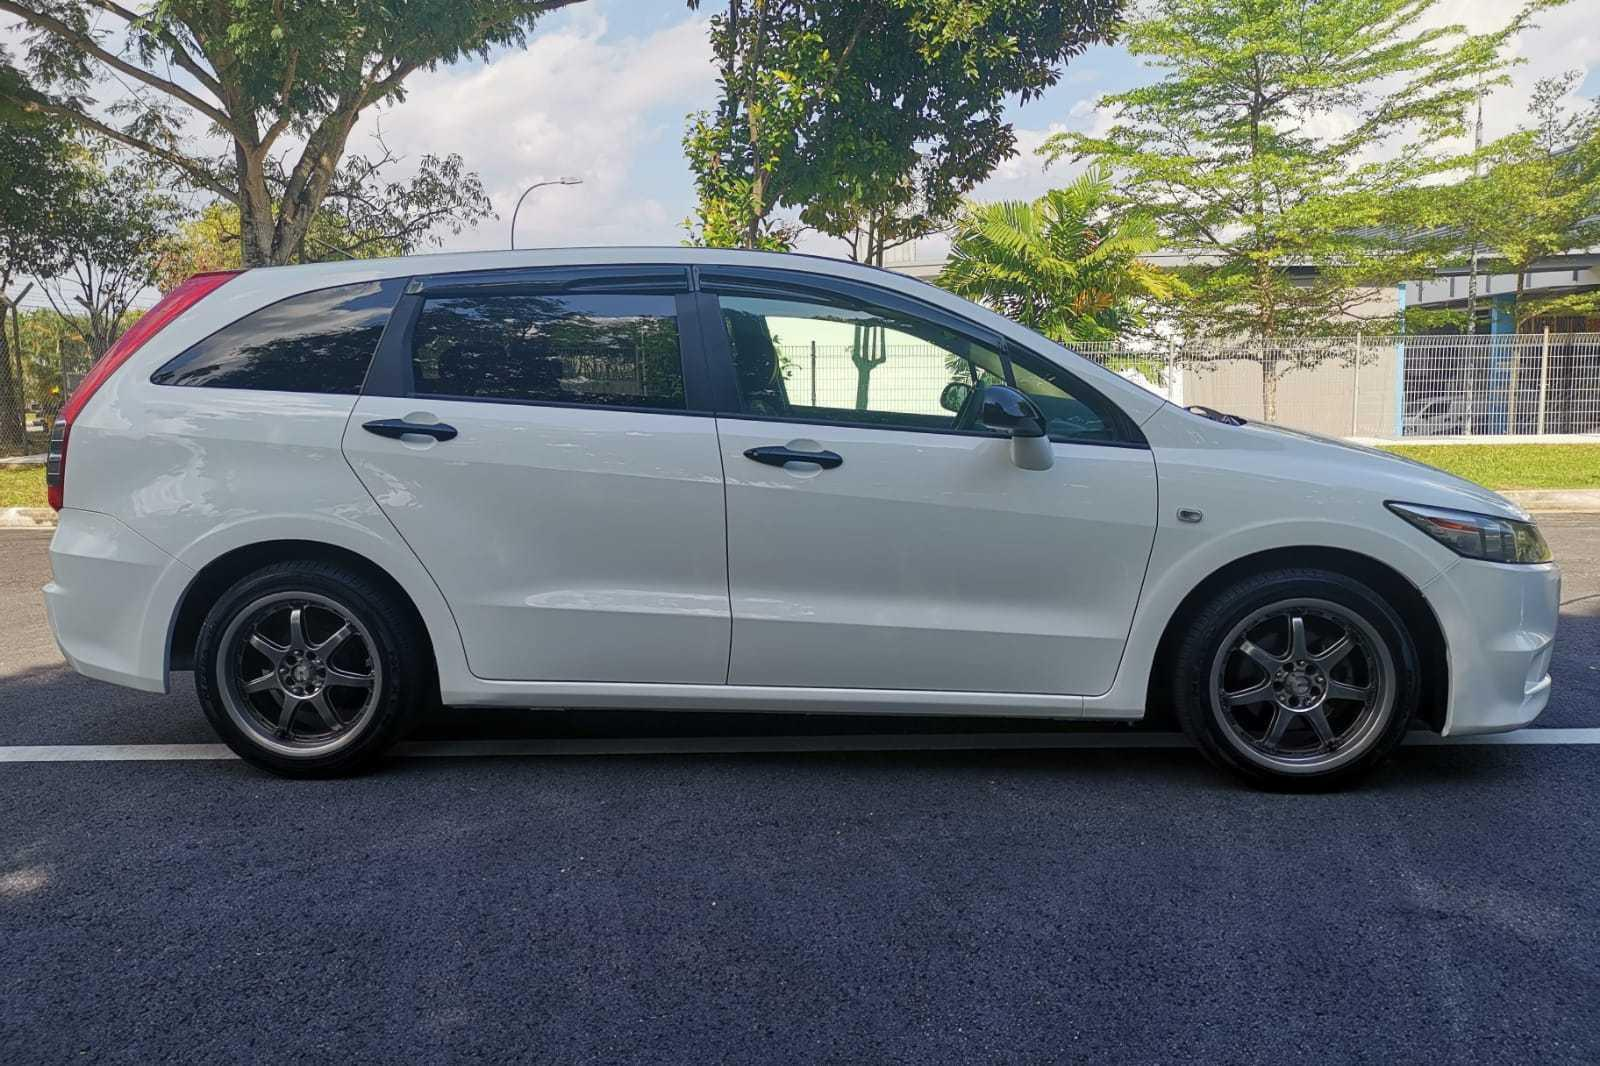 [NEW PAINT AND LEATHER] HONDA STREAM 1.8X A